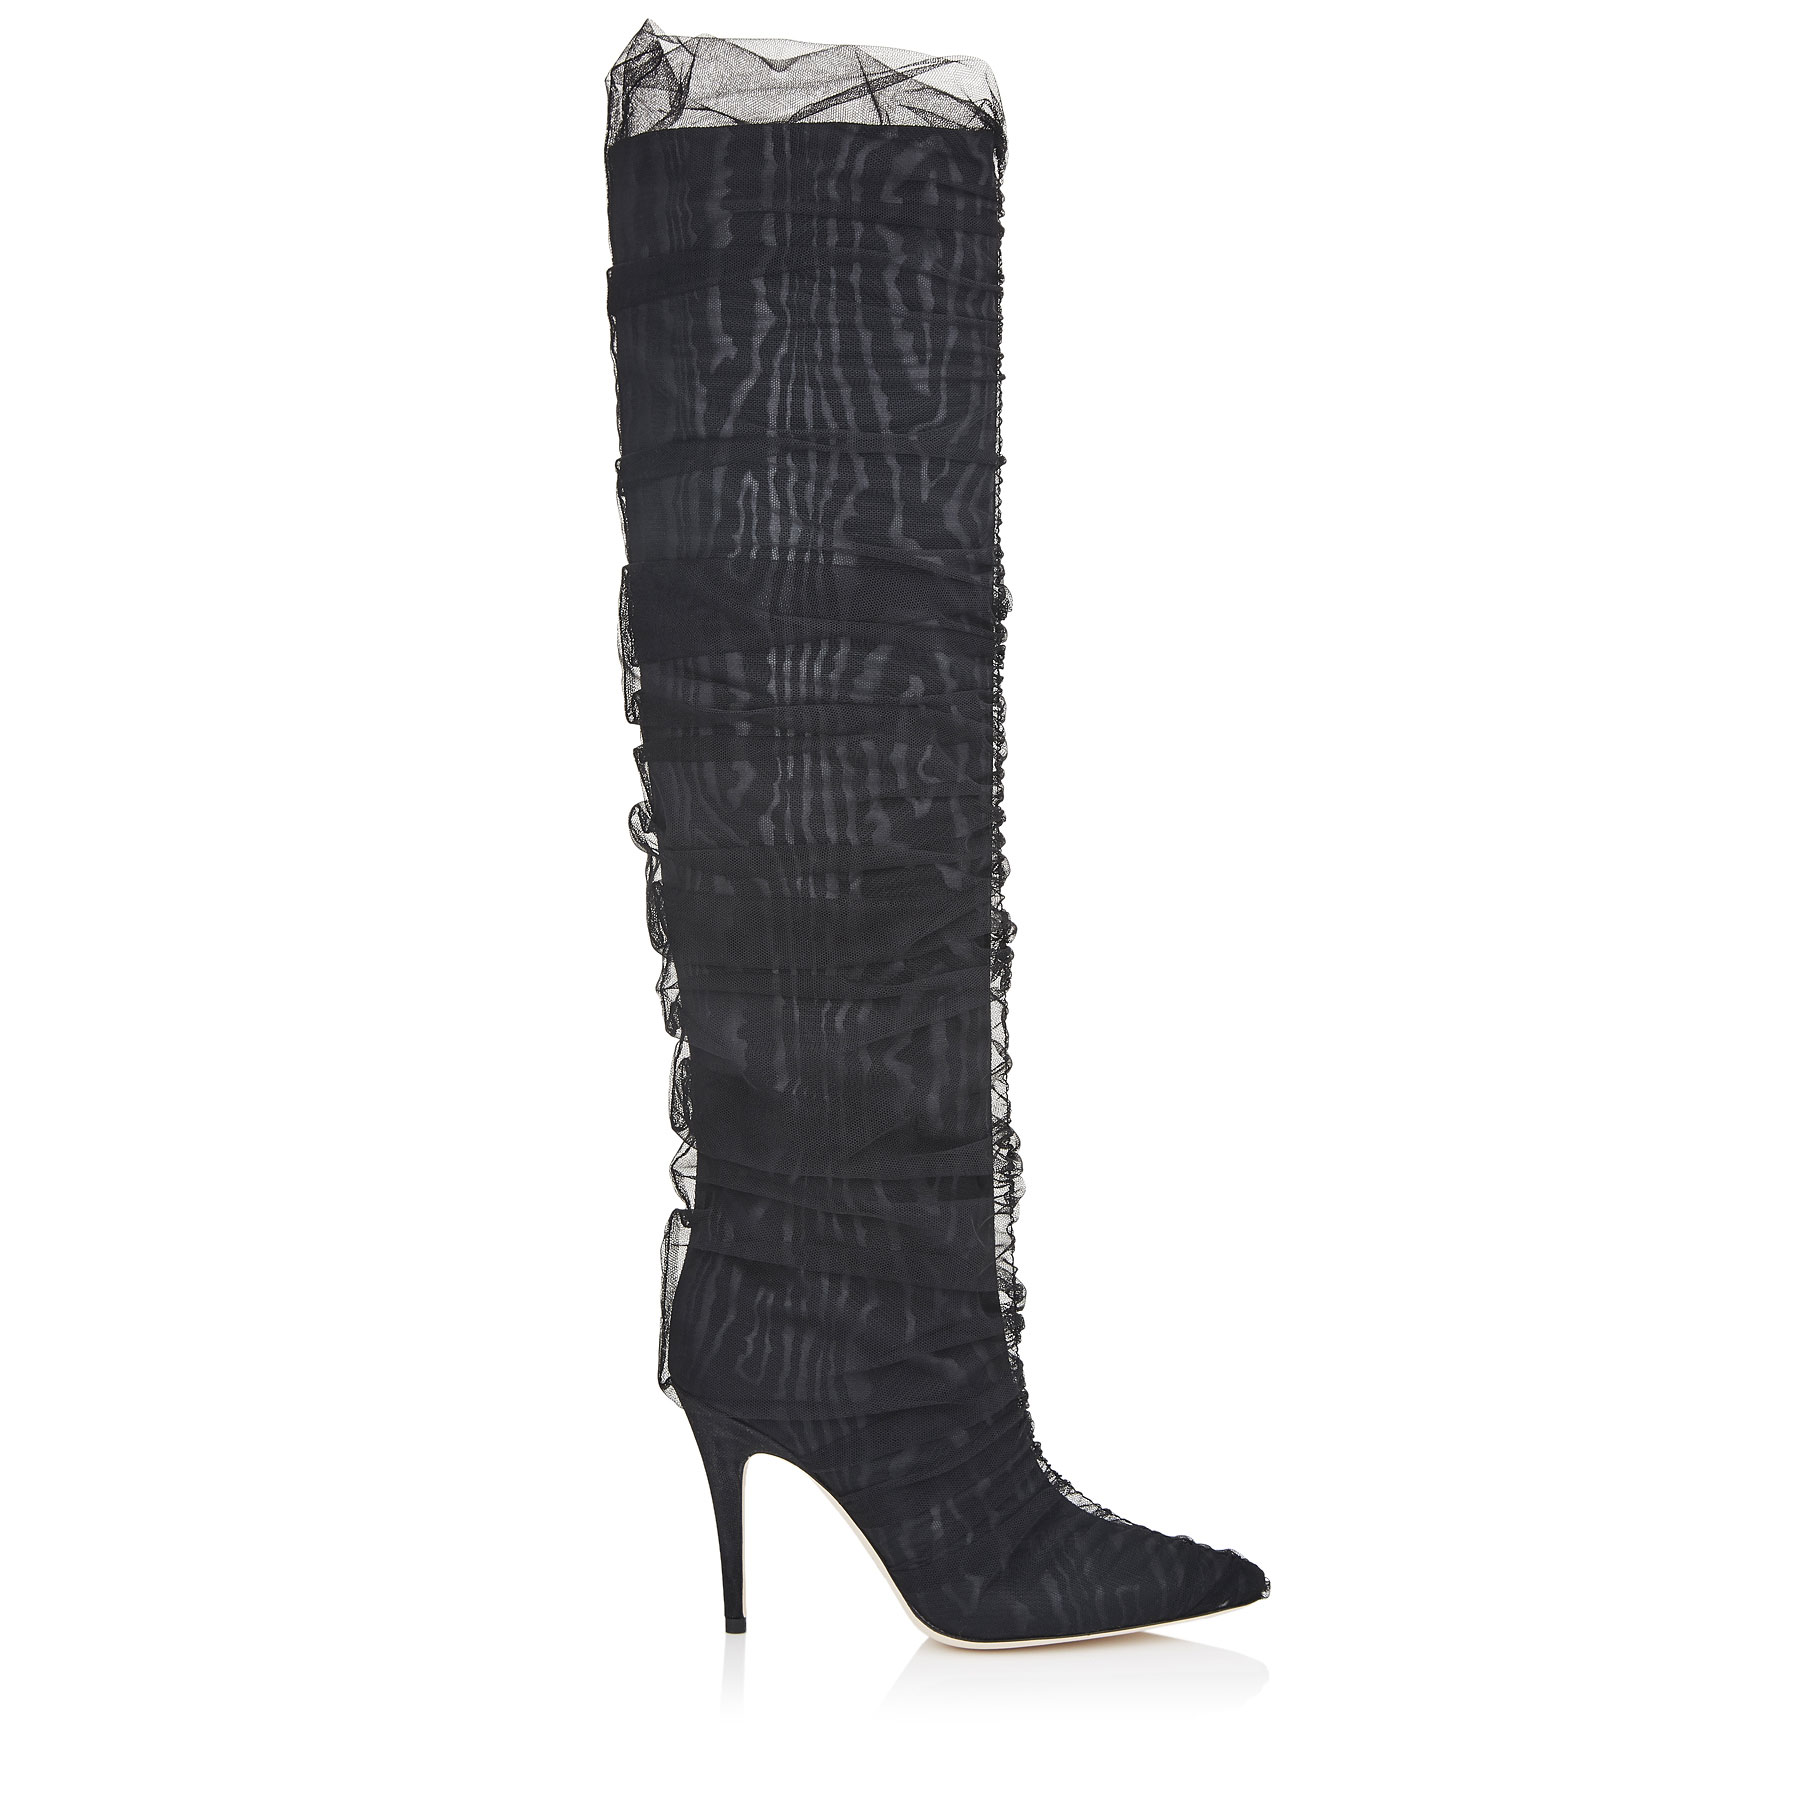 ELISABETH 100 Black Moire Knee High Boots with Ruched Tulle by Jimmy Choo